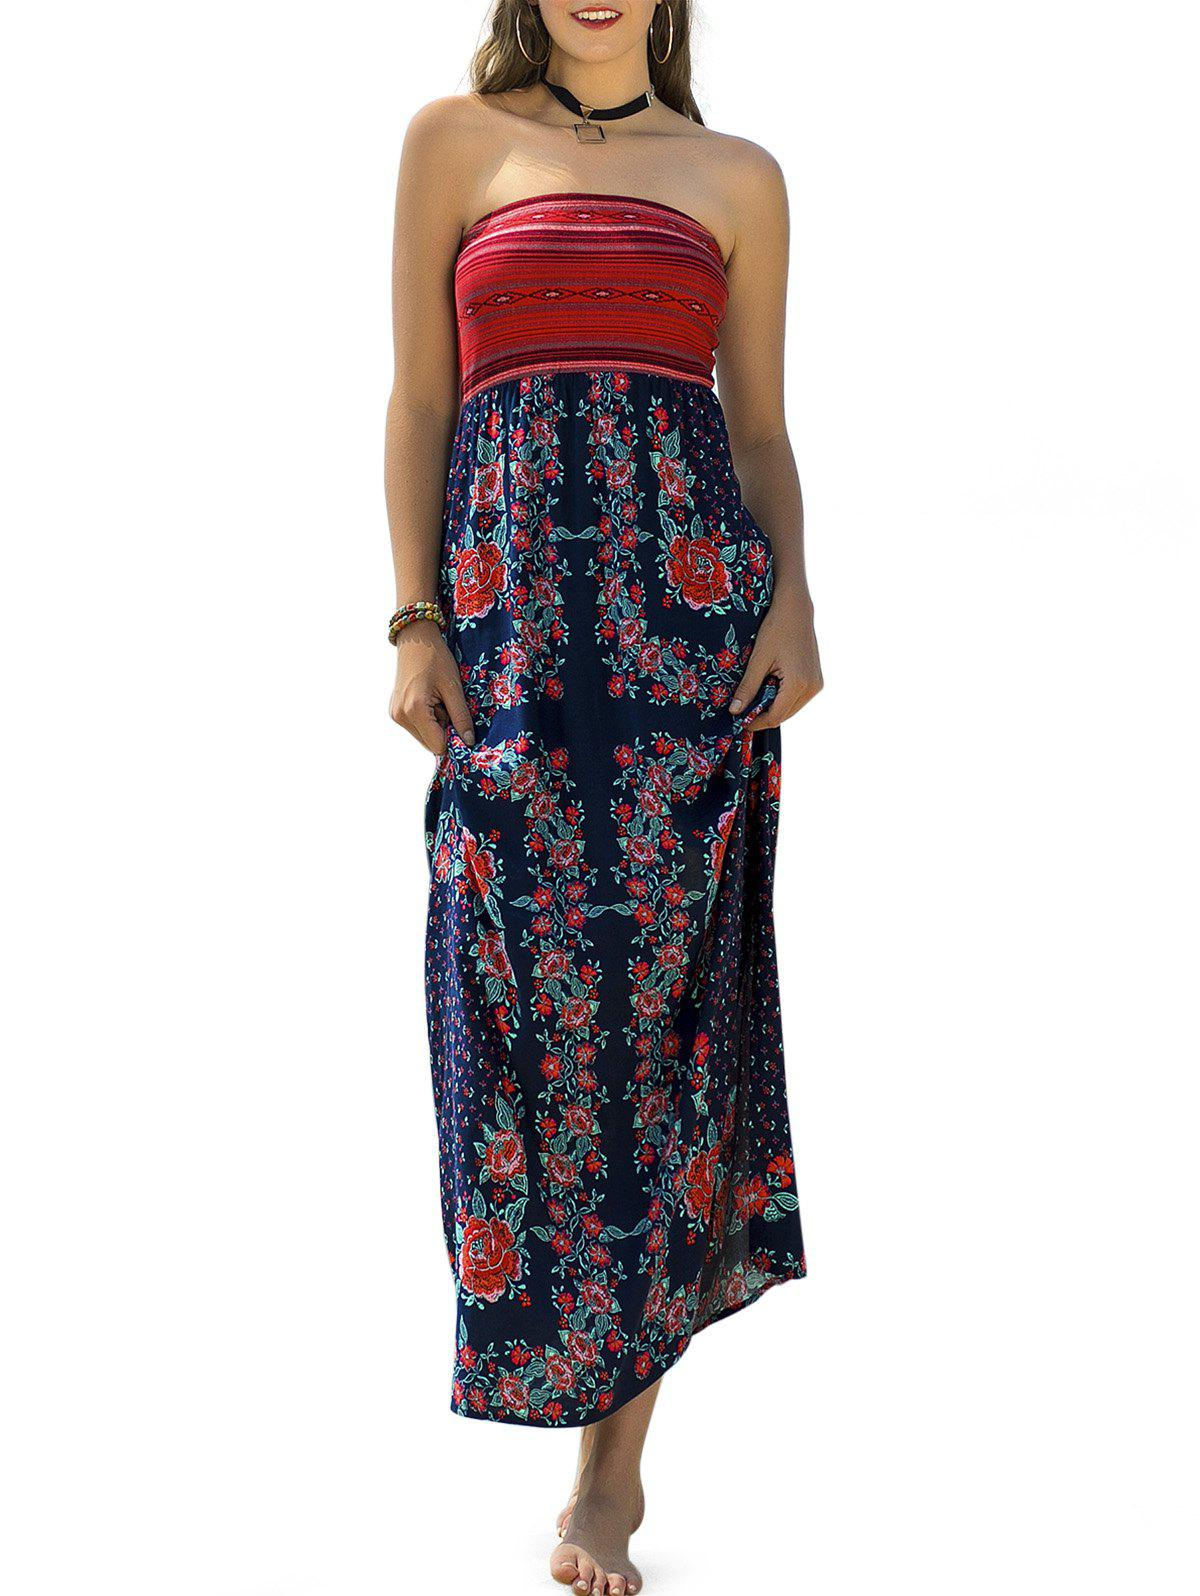 Strapless Floral Printed Vacation Dress - multicolor A M